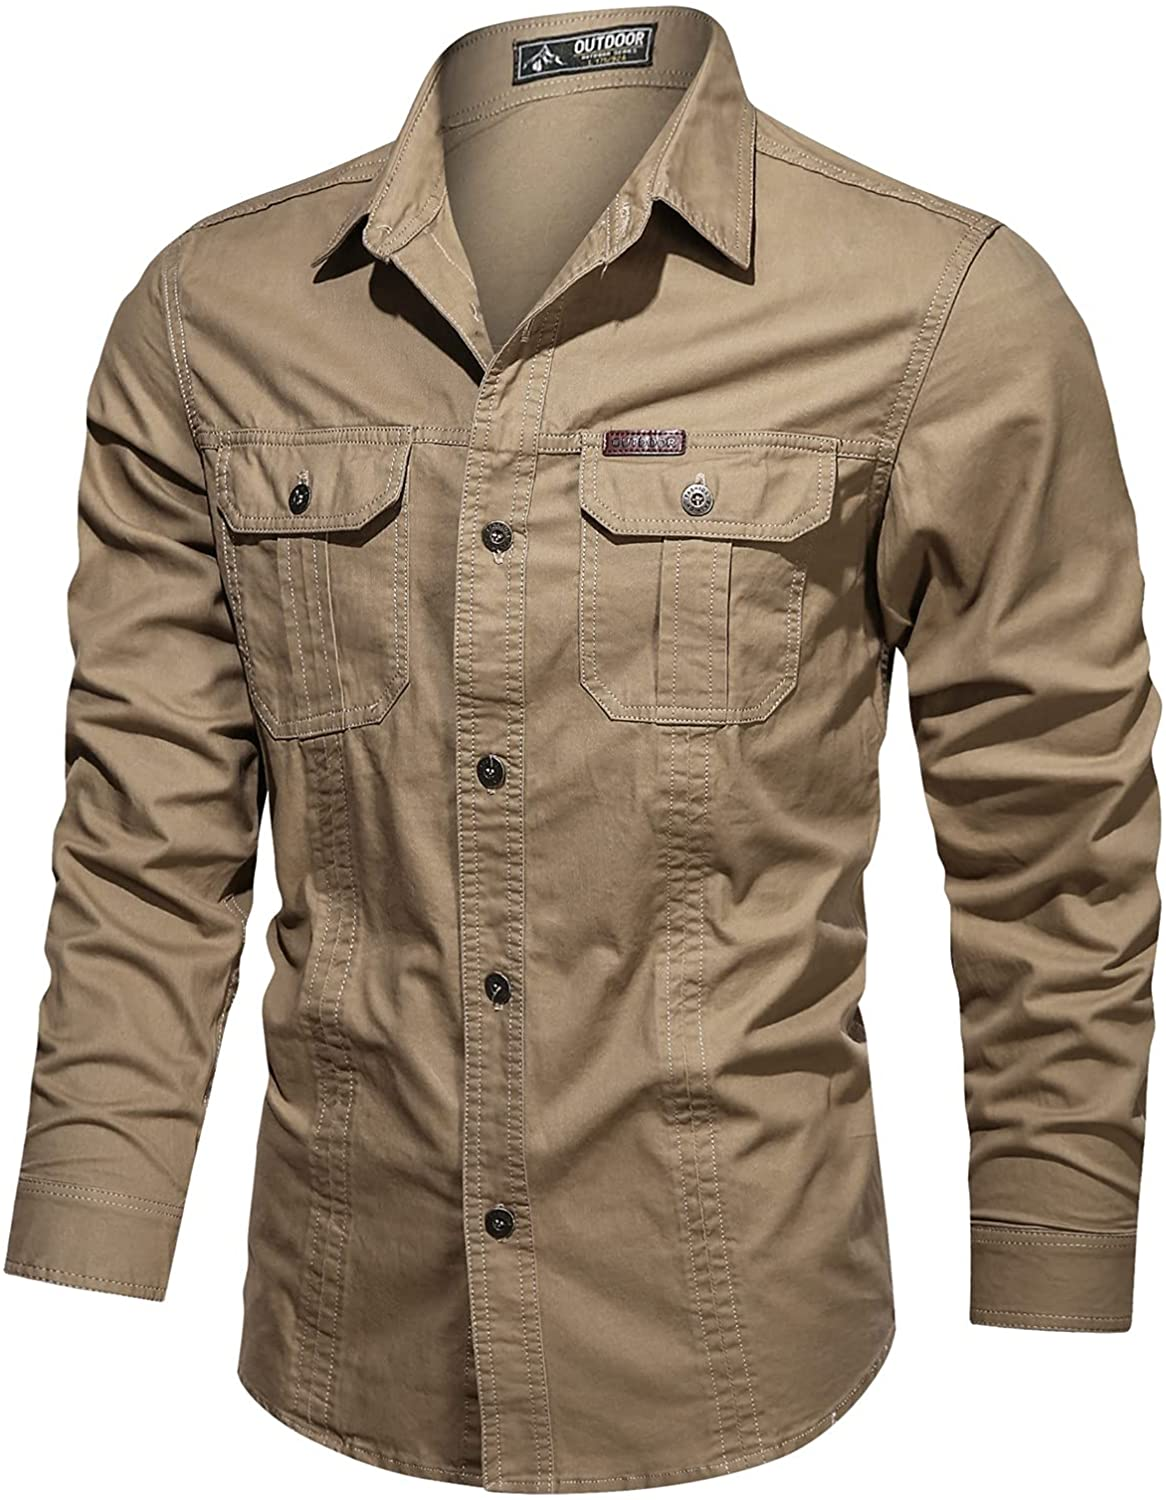 Huangse Men's Long Sleeve Work Shirt Breathable Quick Dry UV Protection Solid Button Down Fishing Shirt Fashion Bomber Shirt